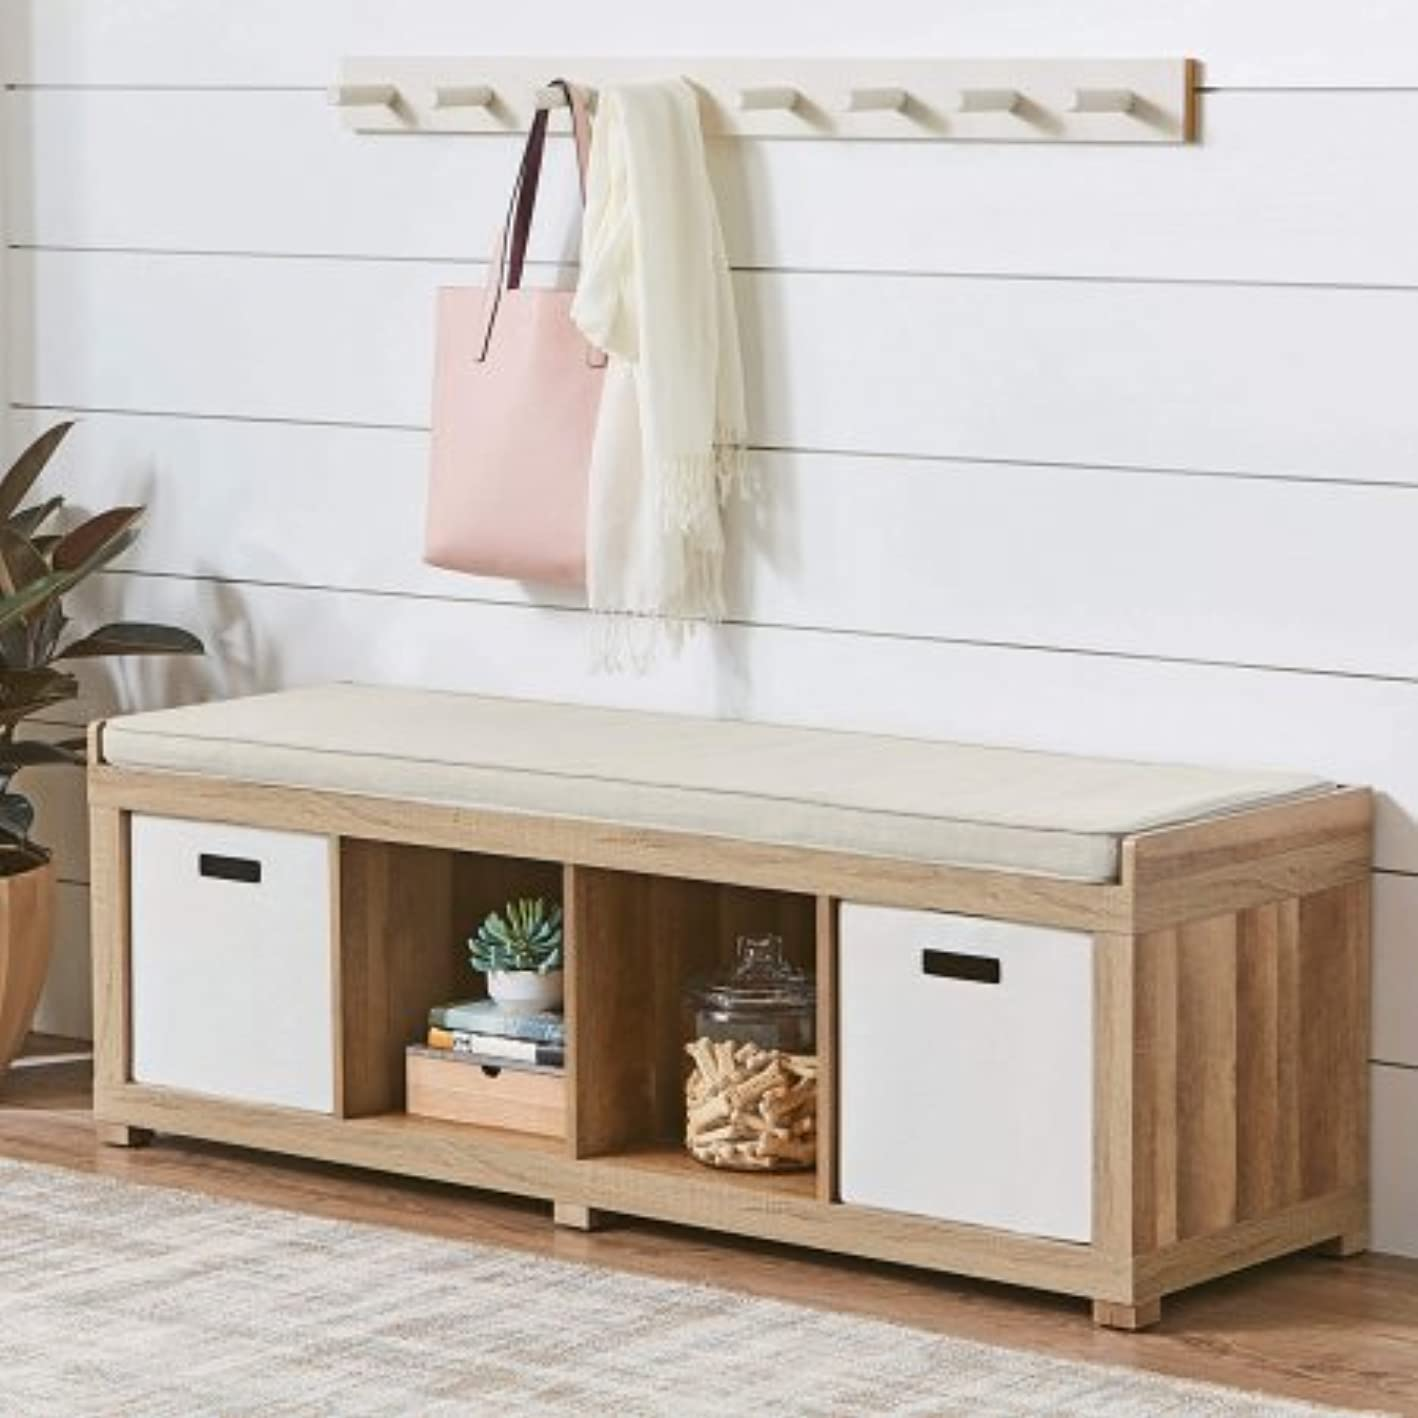 Better Homes and Gardens 4-Cube Storage Organizer Bench (Weathered)